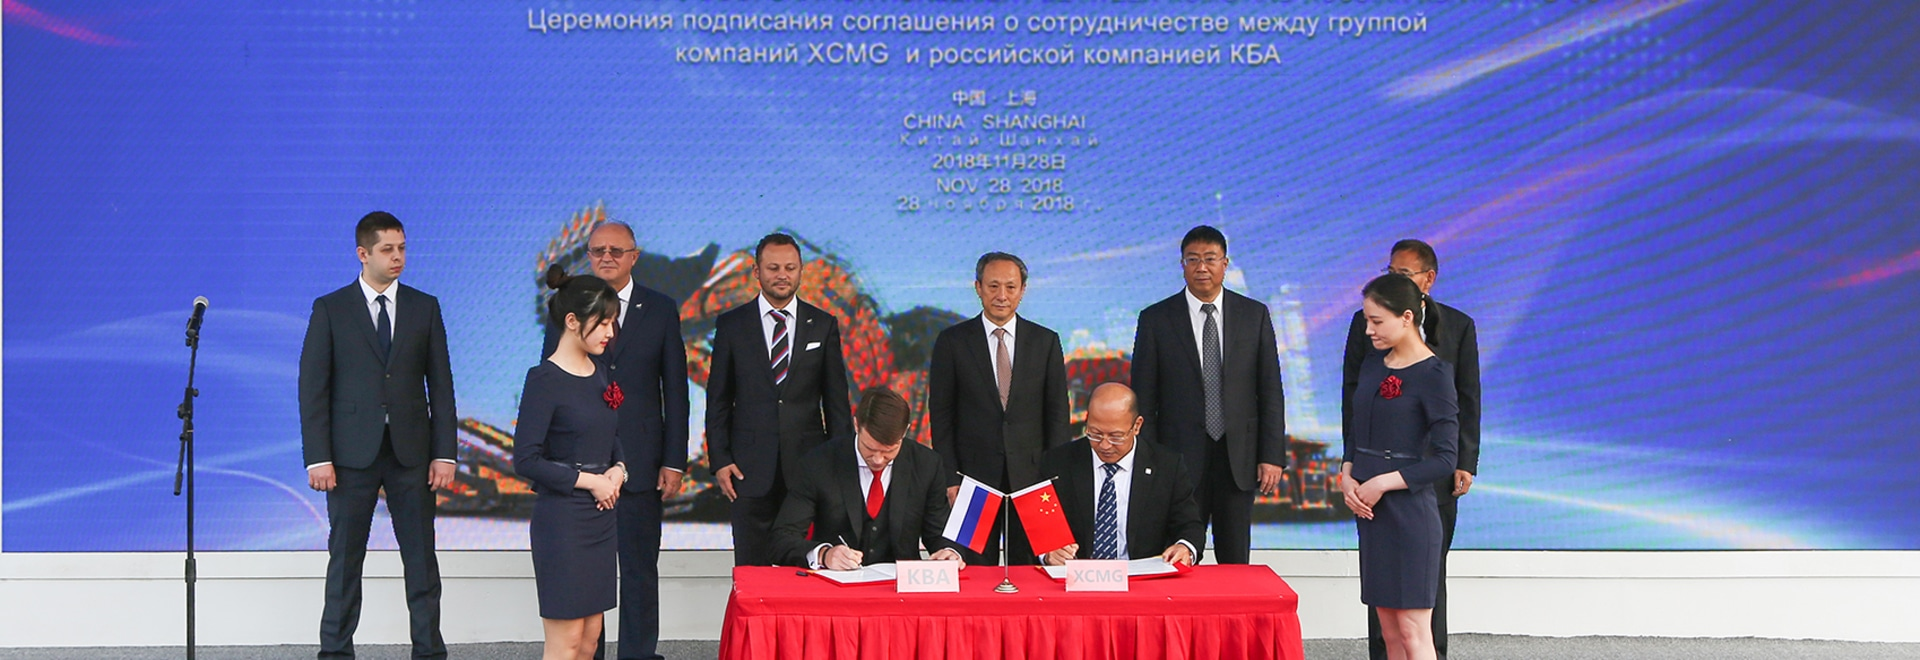 XCMG Joins Hands with Global Mining Giant - Russian KBA Company